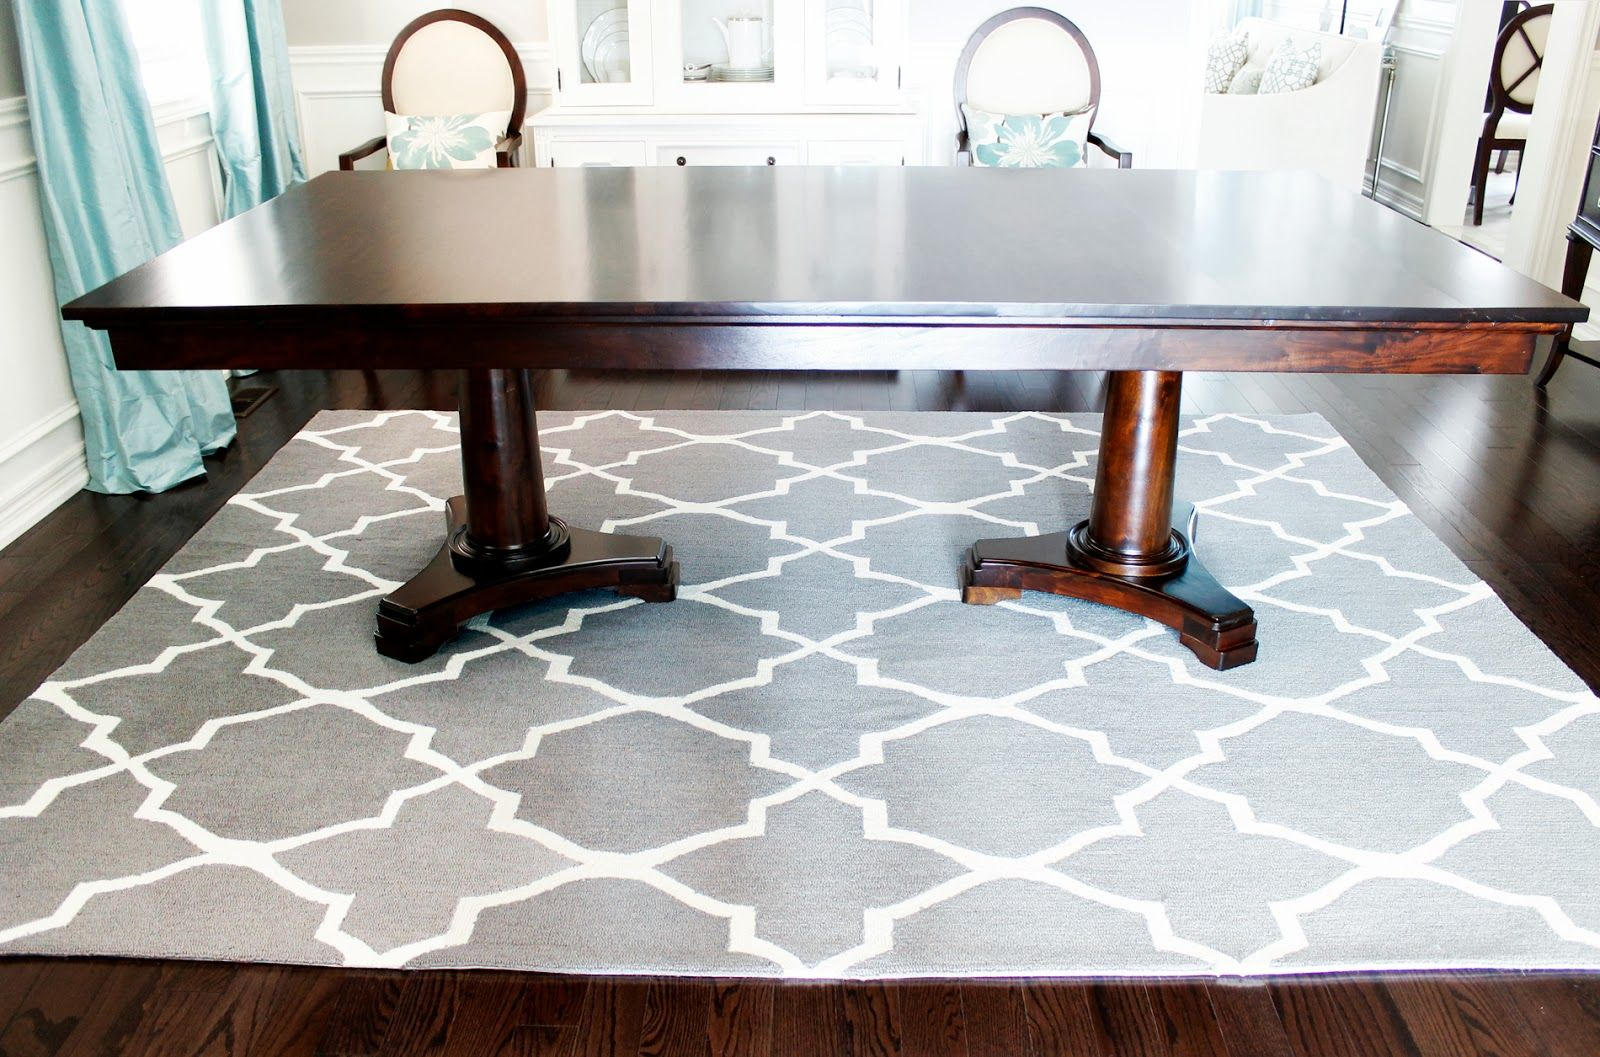 Pin By Erin Lowery Corkran On Dining Room Dining Table Rug Rug